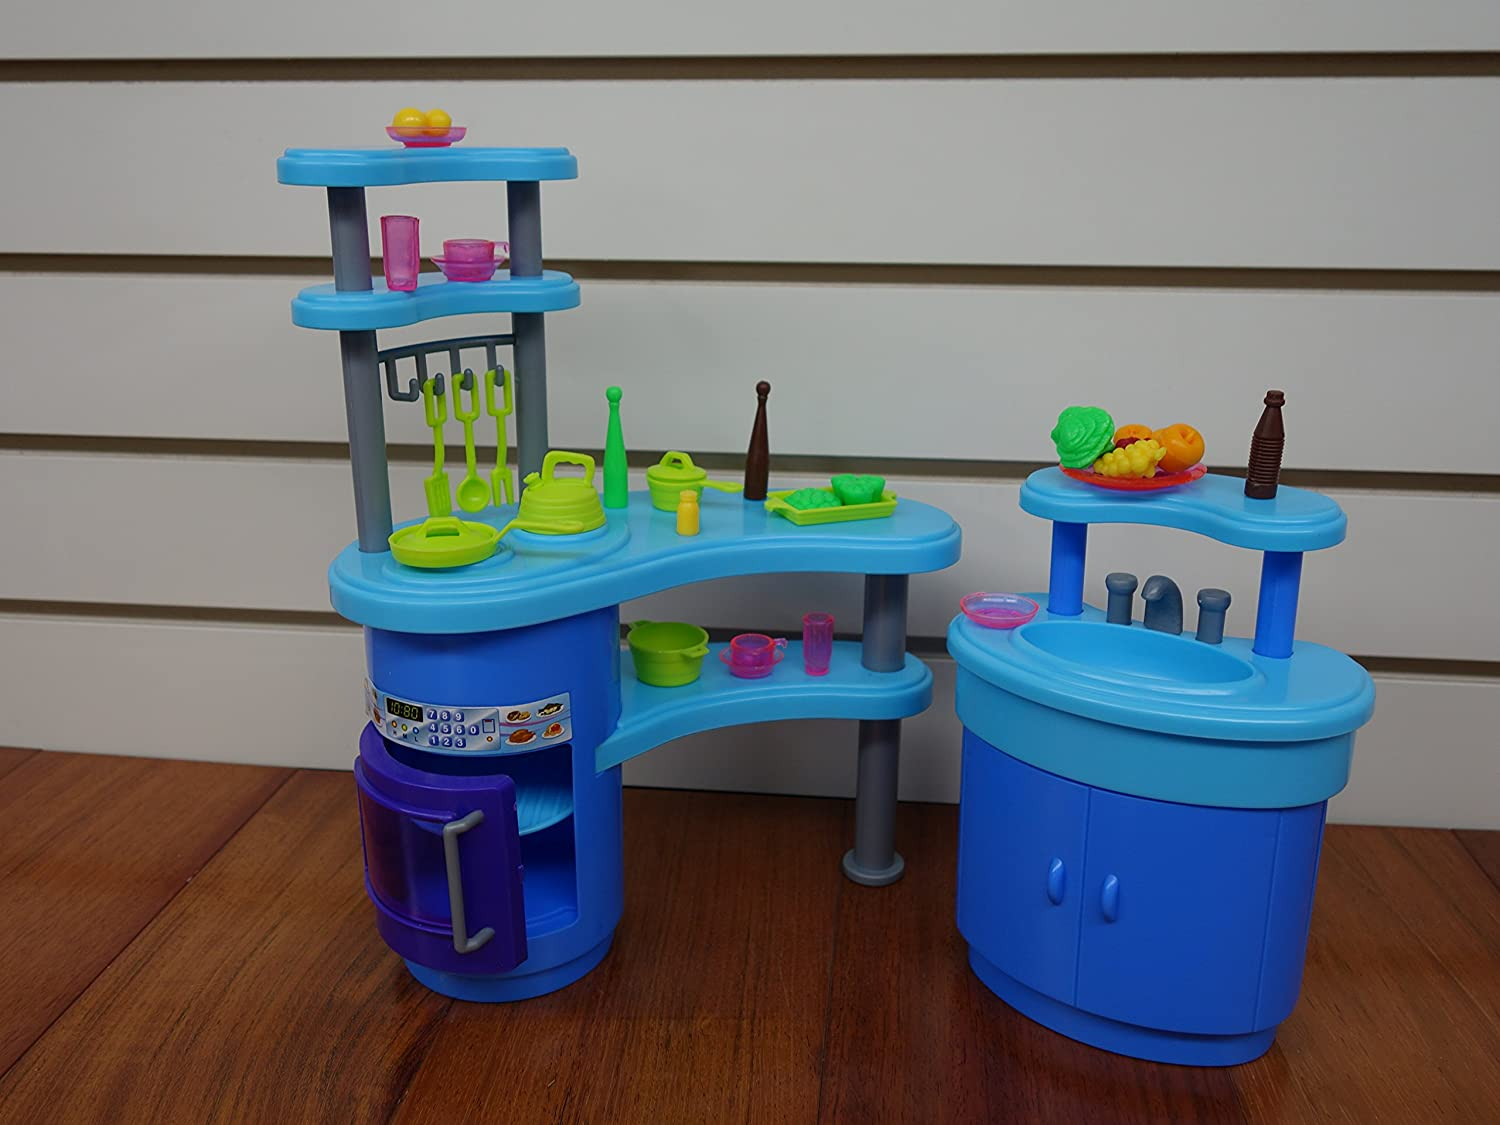 Amazon.com: My Fancy Life Kitchen Play Set: Toys & Games